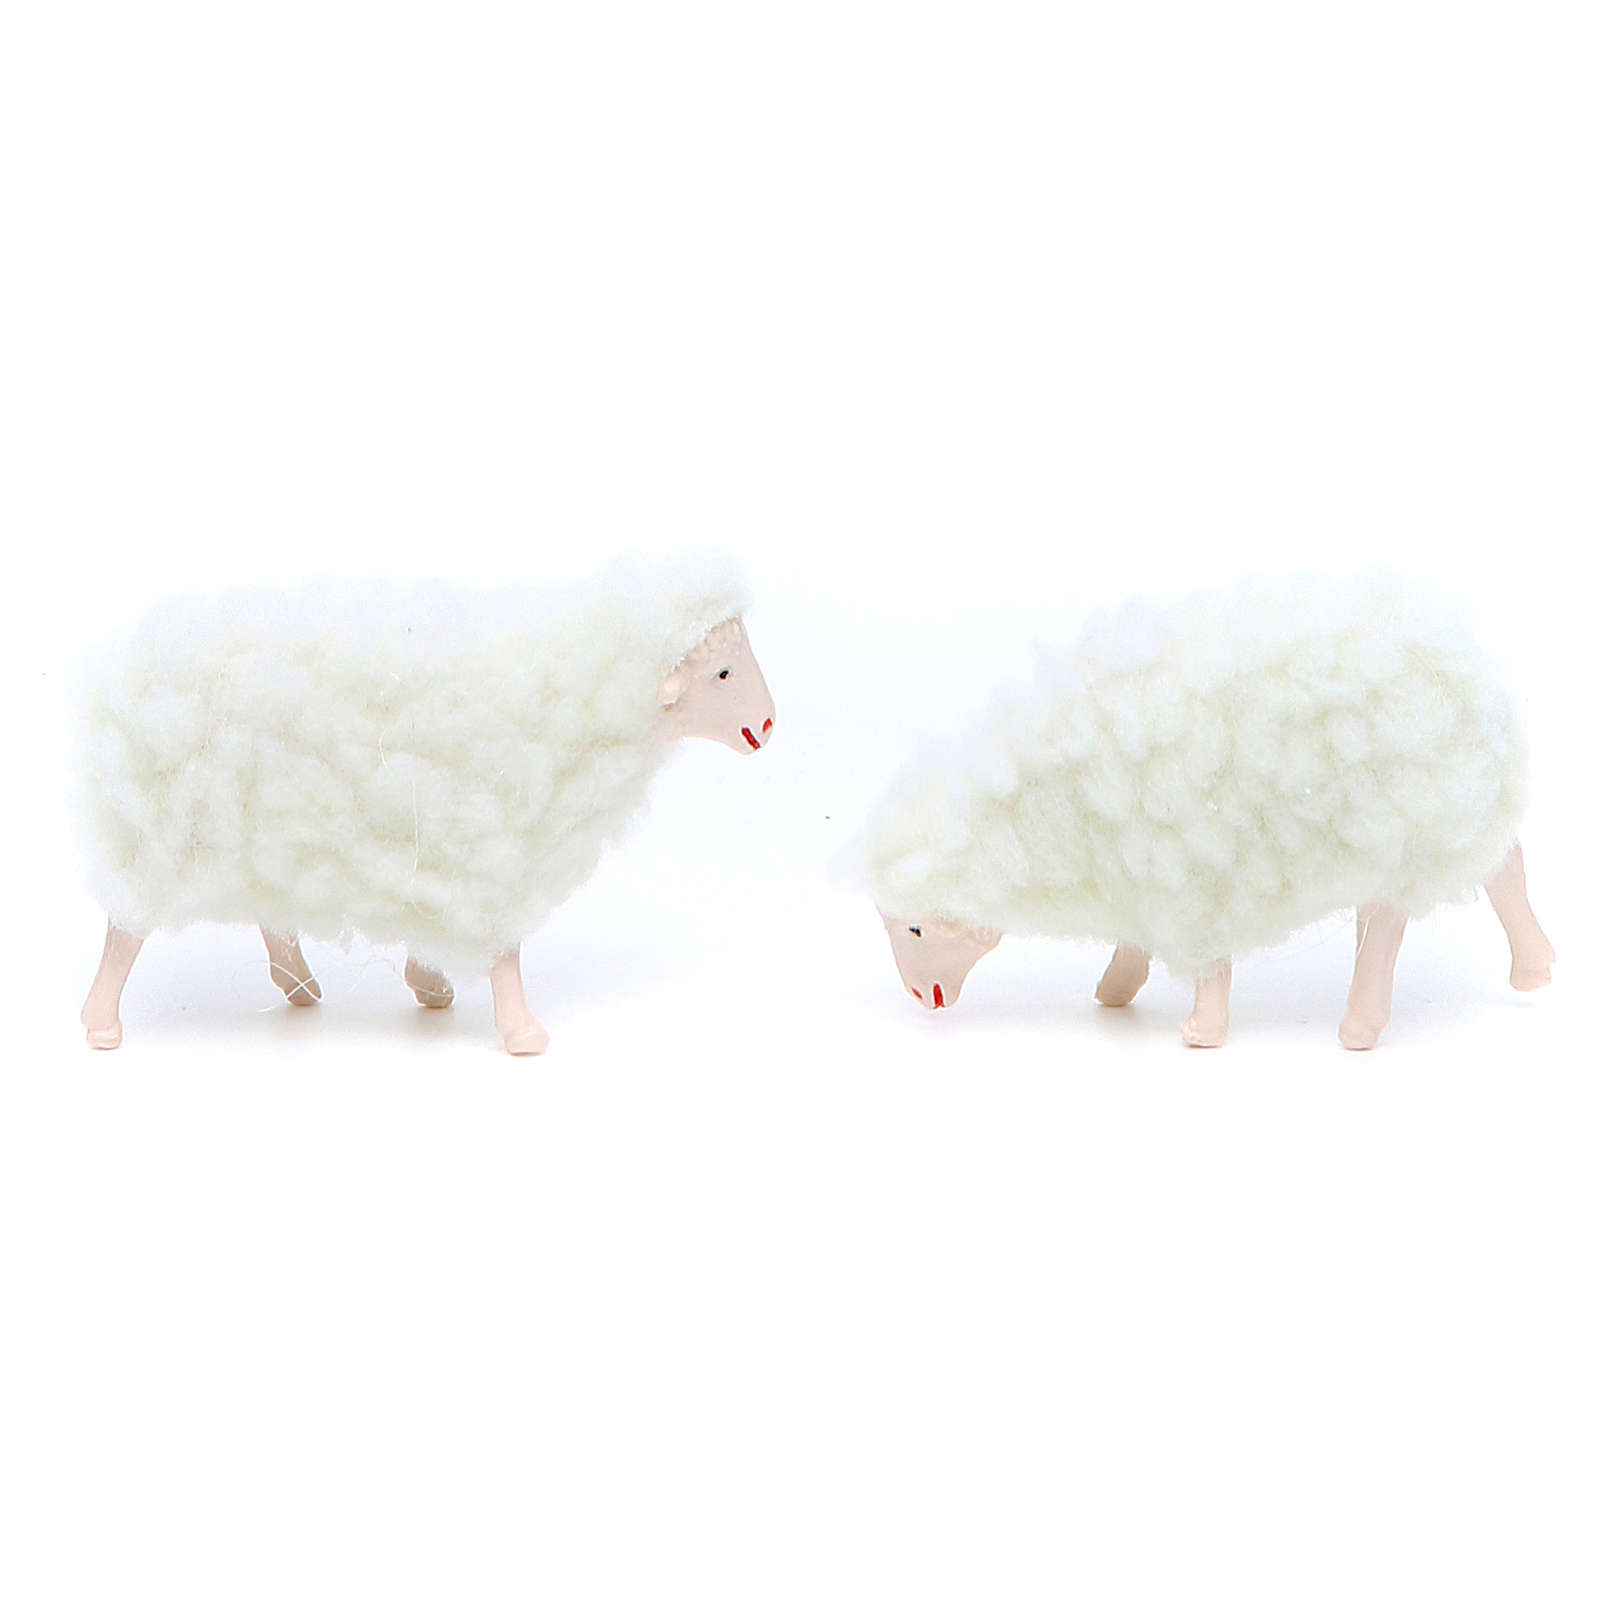 Sheep in resin and white wool 10 cm 4 pcs 3